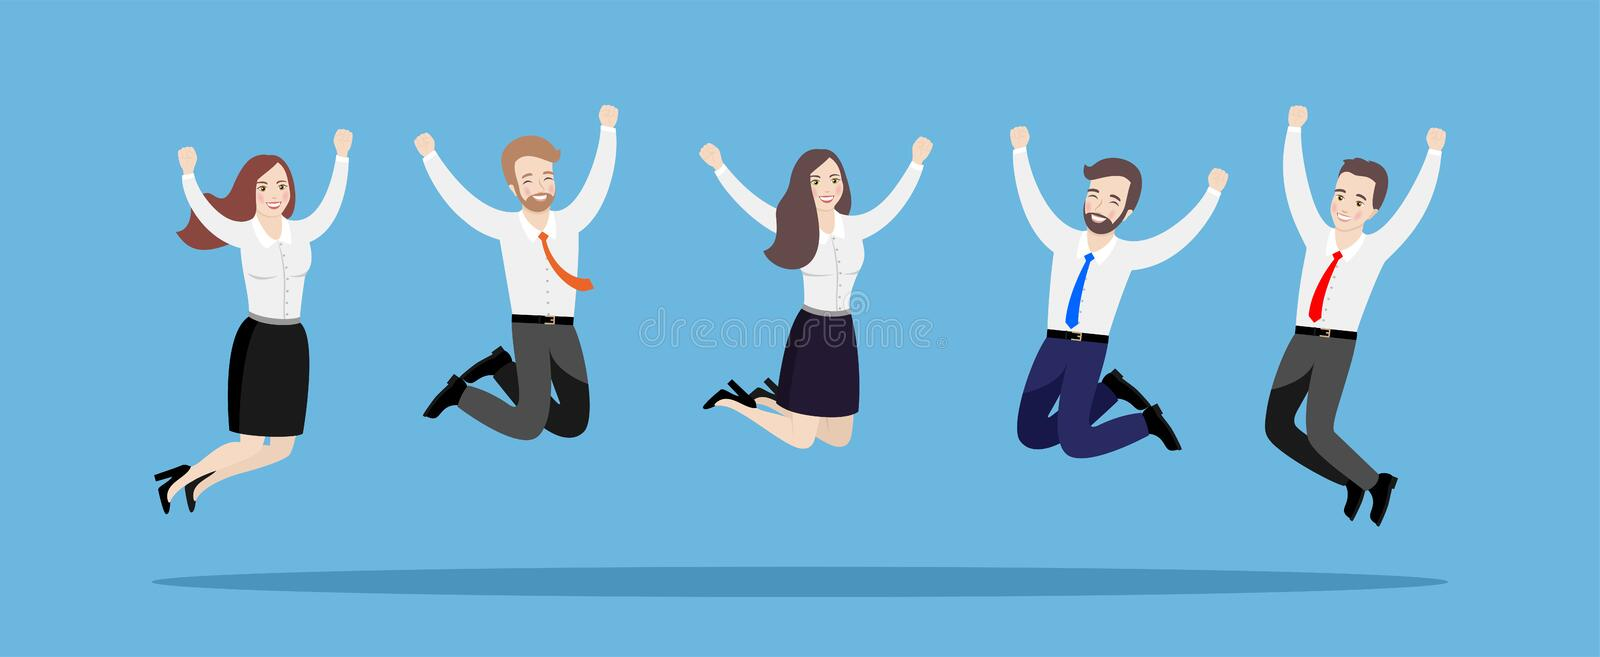 Business people jump together. Illustration of a team of happy workers on a blue background. Flat illustration for design vector illustration